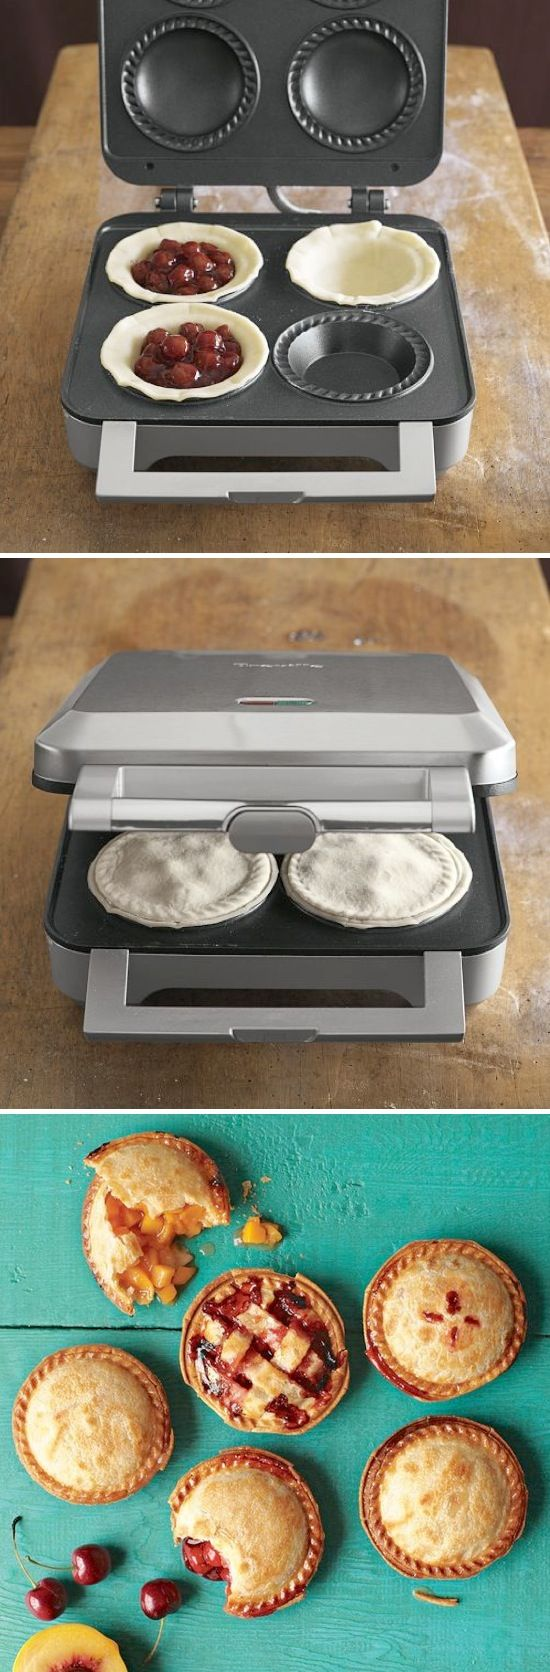 Personal Pie Maker.....hmmm, like i need another kitchen thingie...